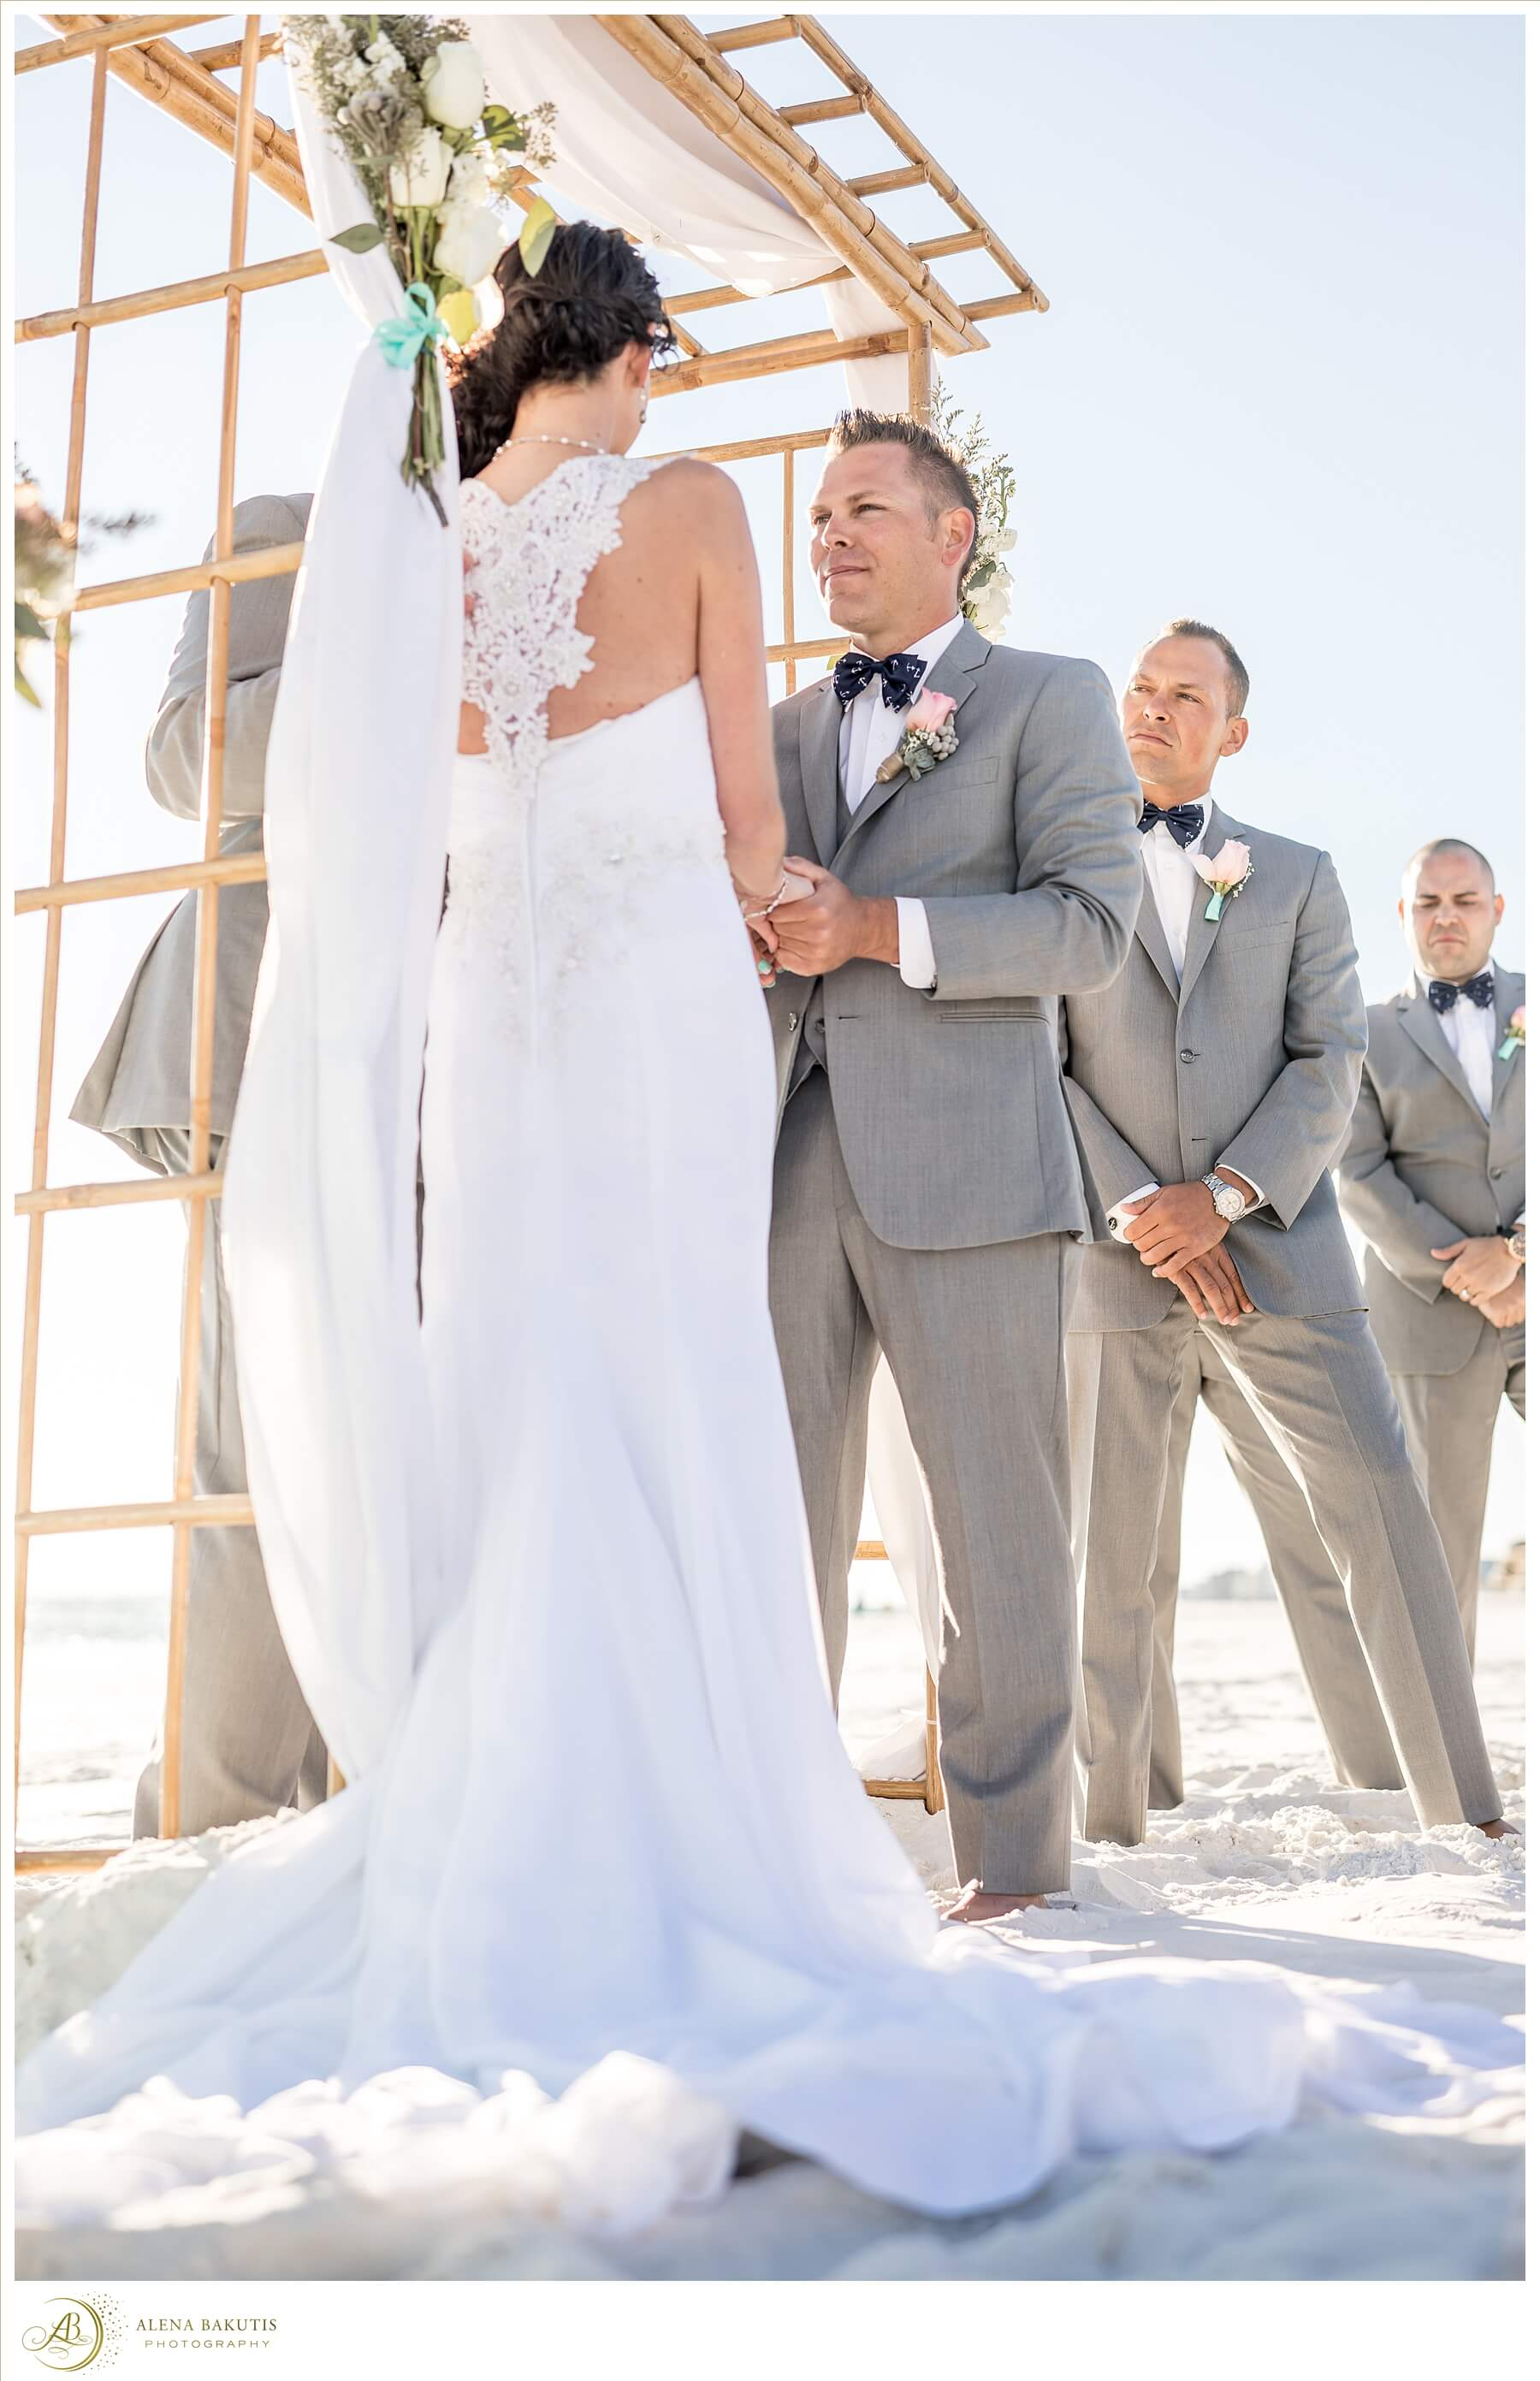 destin beach weddings Alena Bakutis Photography - Amber Brandon-366_WEB